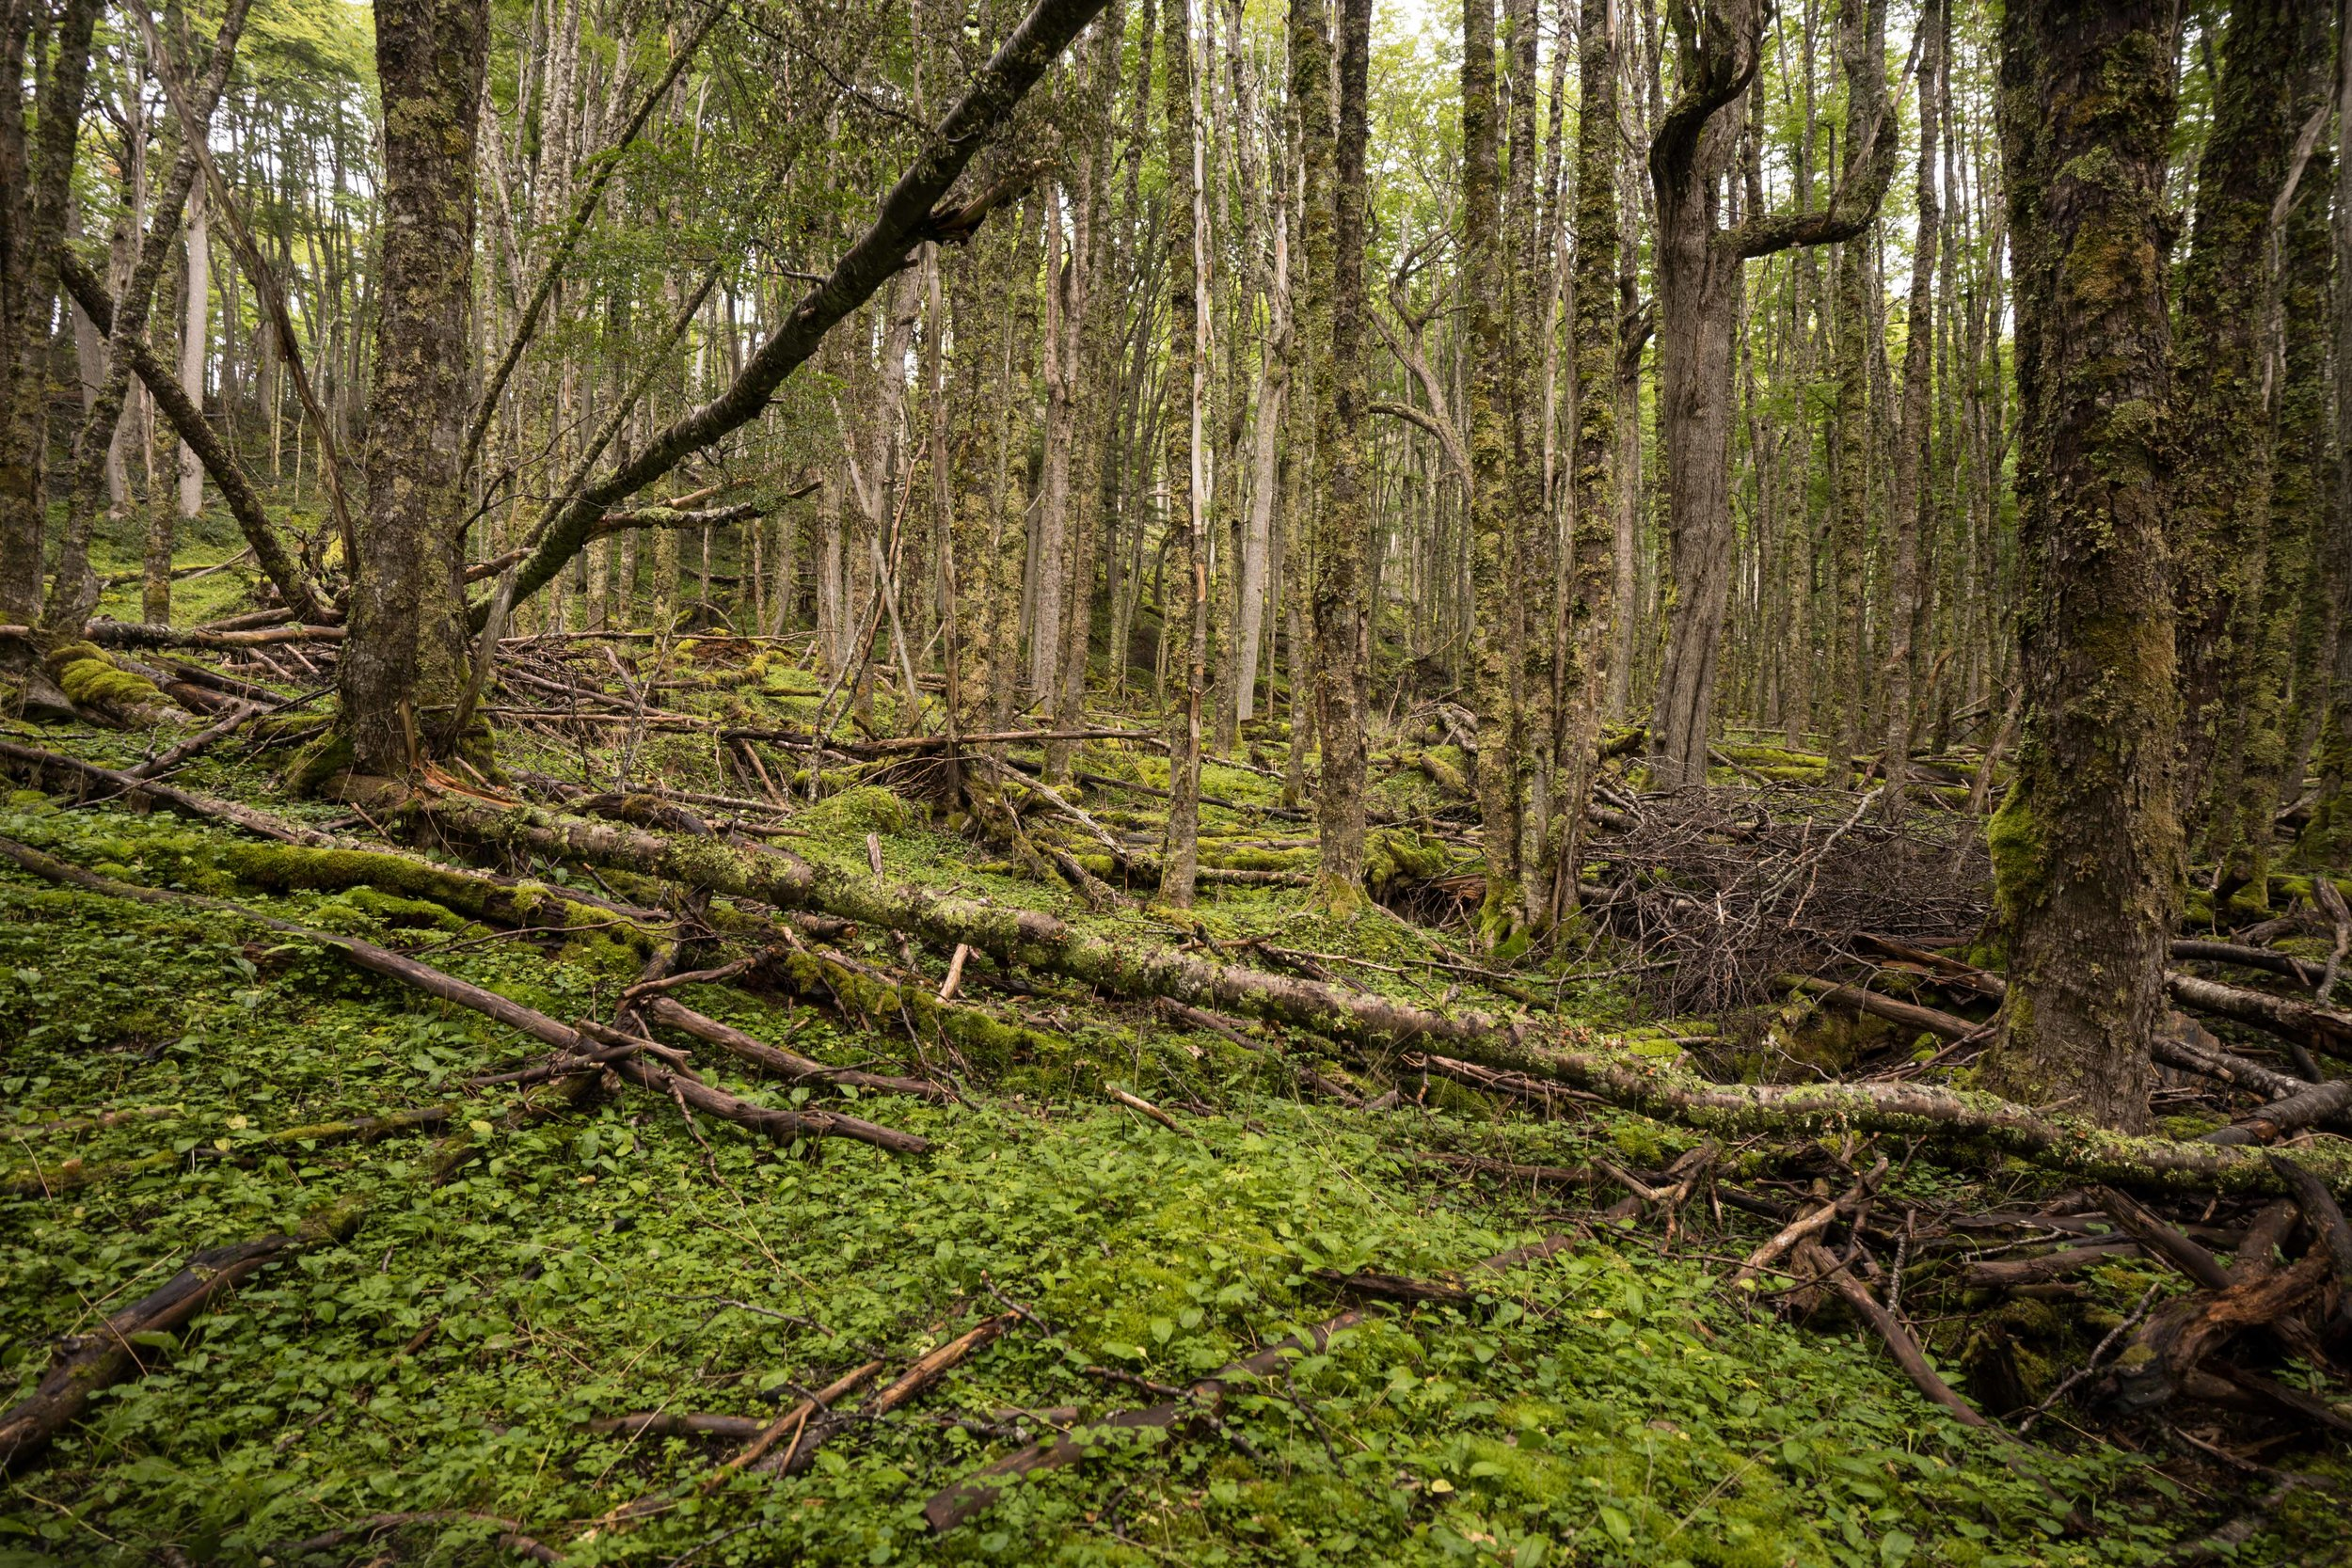 Every patch of forest is also a garden of mosses, lichens and liverworts covering everything.